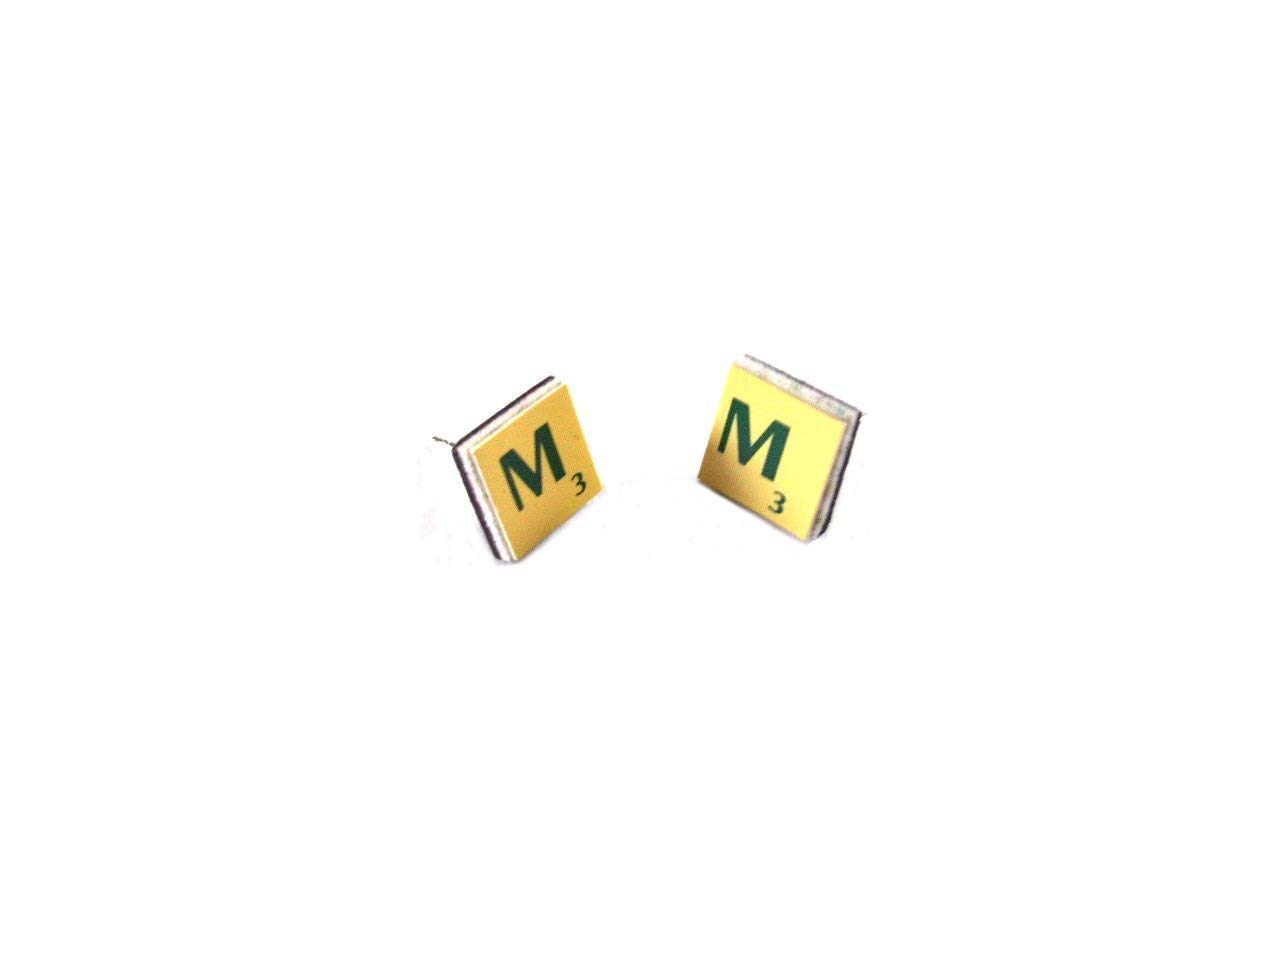 Miniature Travel Scrabble® Stud Earrings made with Recycled Vintage Letter Tiles Silver Plated/Sterling Silver, Gift Boxed